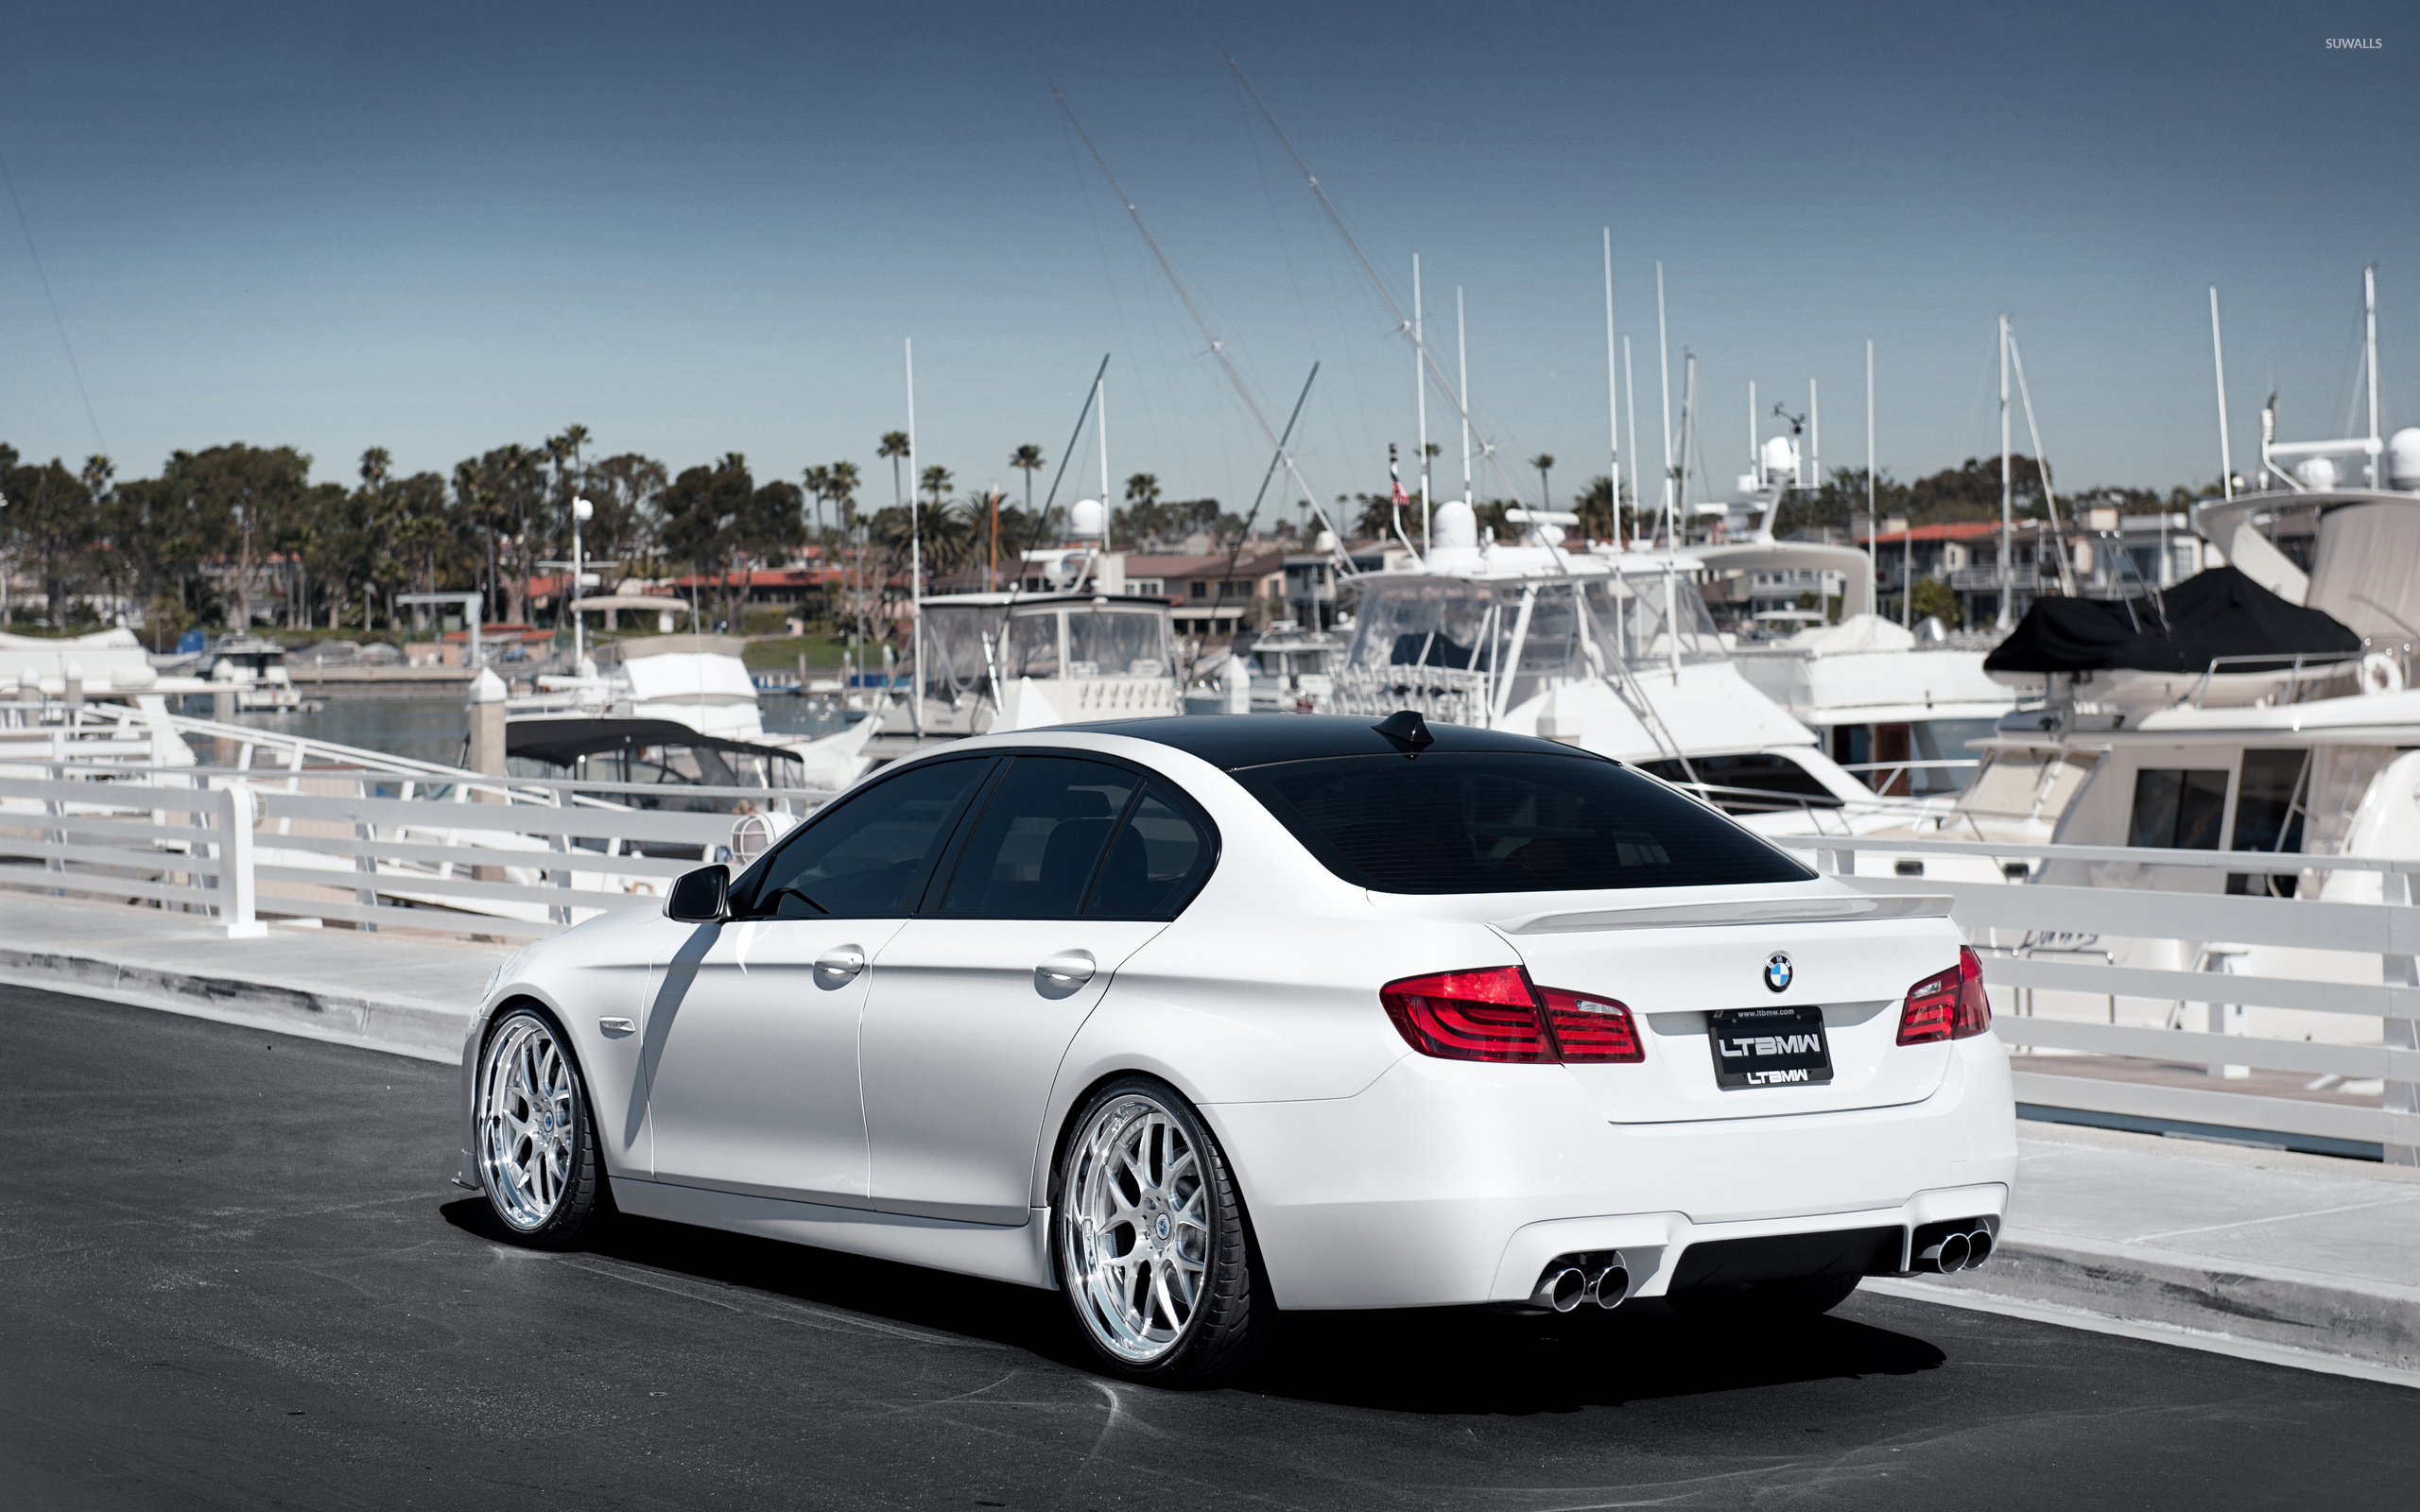 Views 255 Category Cars Hd Wallpapers Subcategory Bmw Hd ...